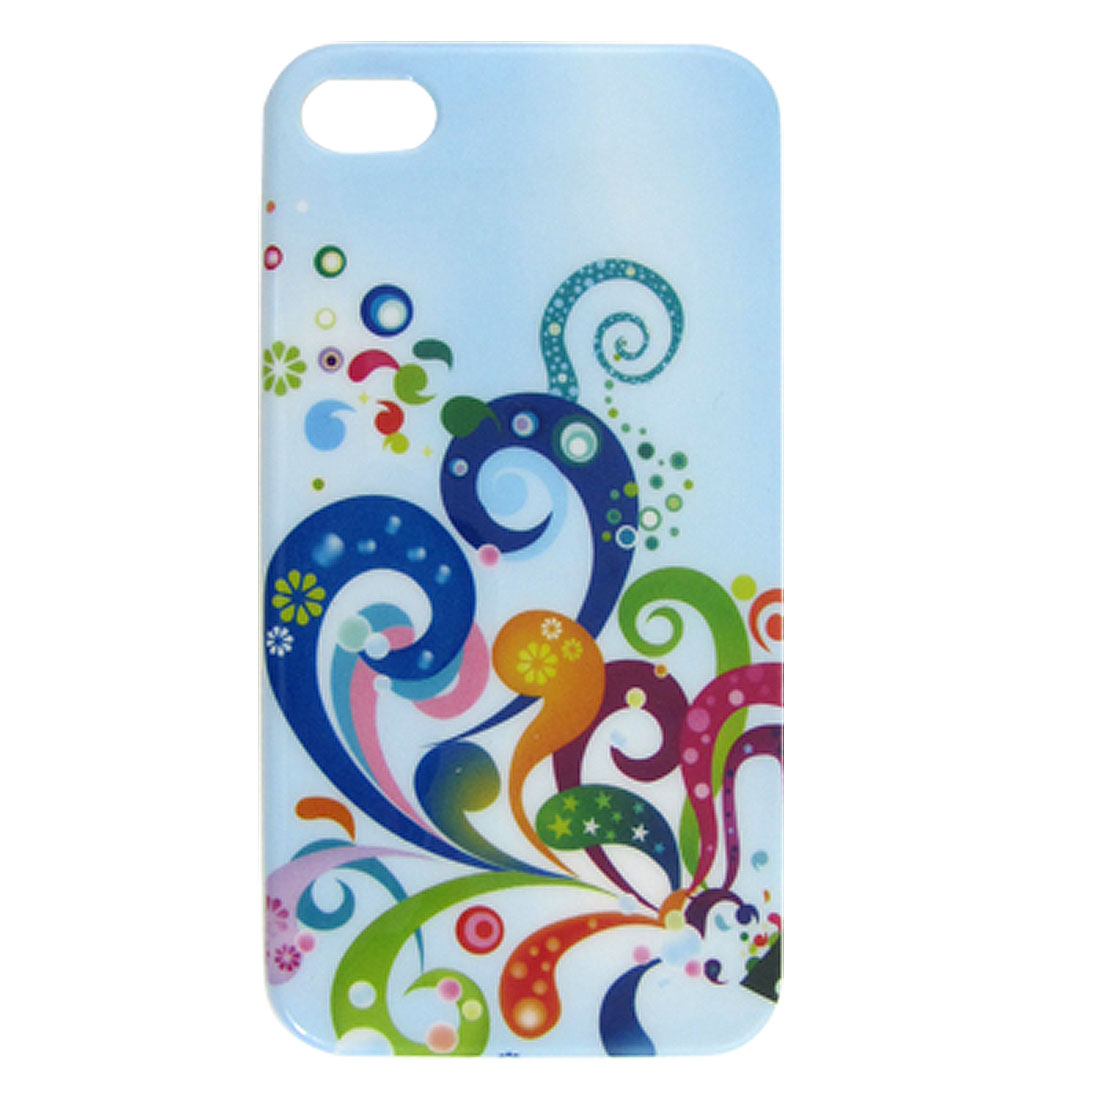 Protective Colorful Ribbon Pattern IMD Back Case Cover for iPhone 4 4G 4S